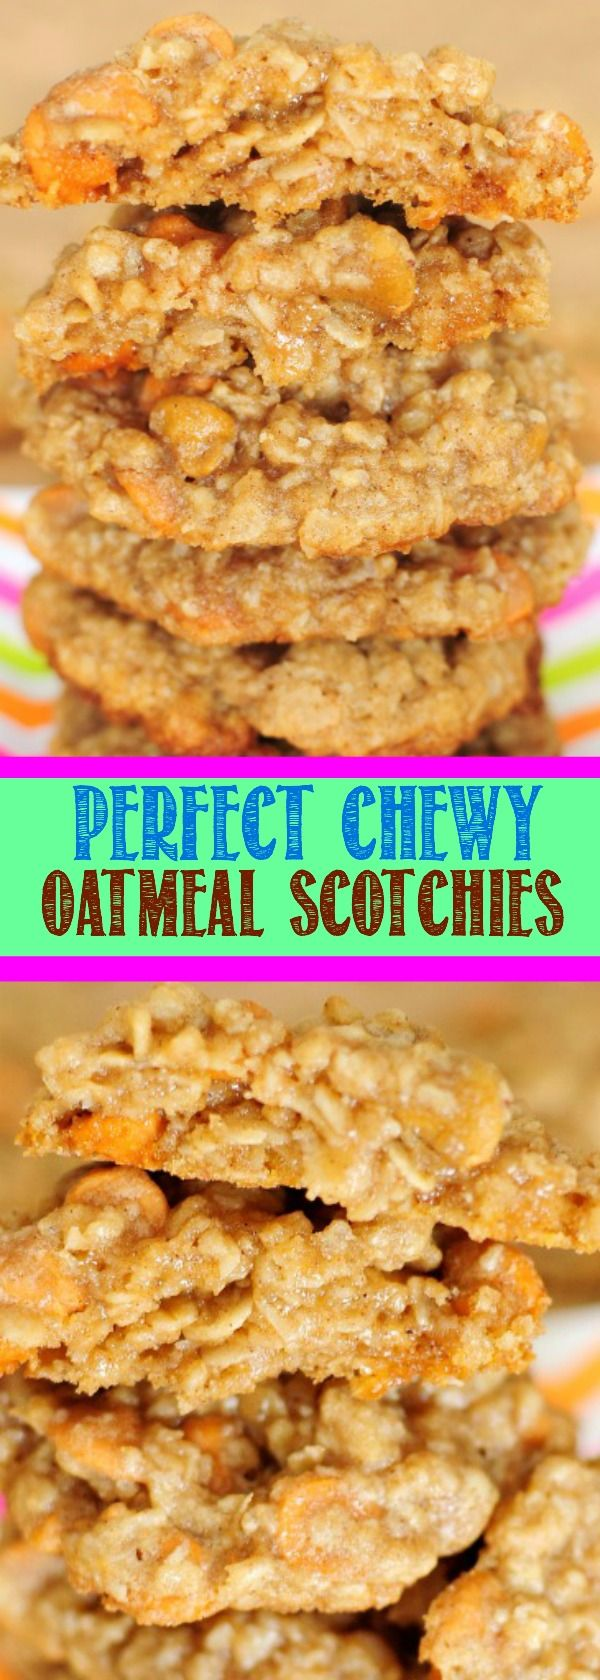 How to Make The Perfect Chewy Oatmeal Scotchies